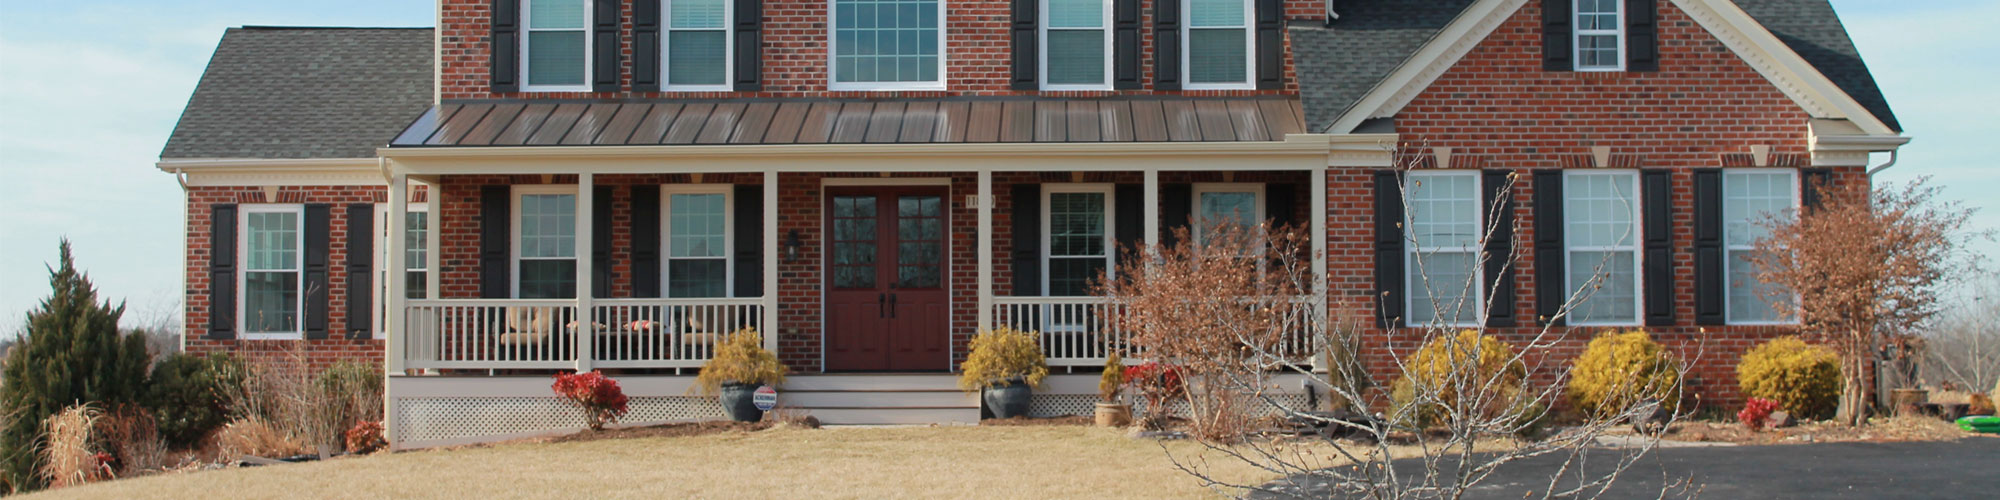 Your Exterior Experts For Windows & Doors